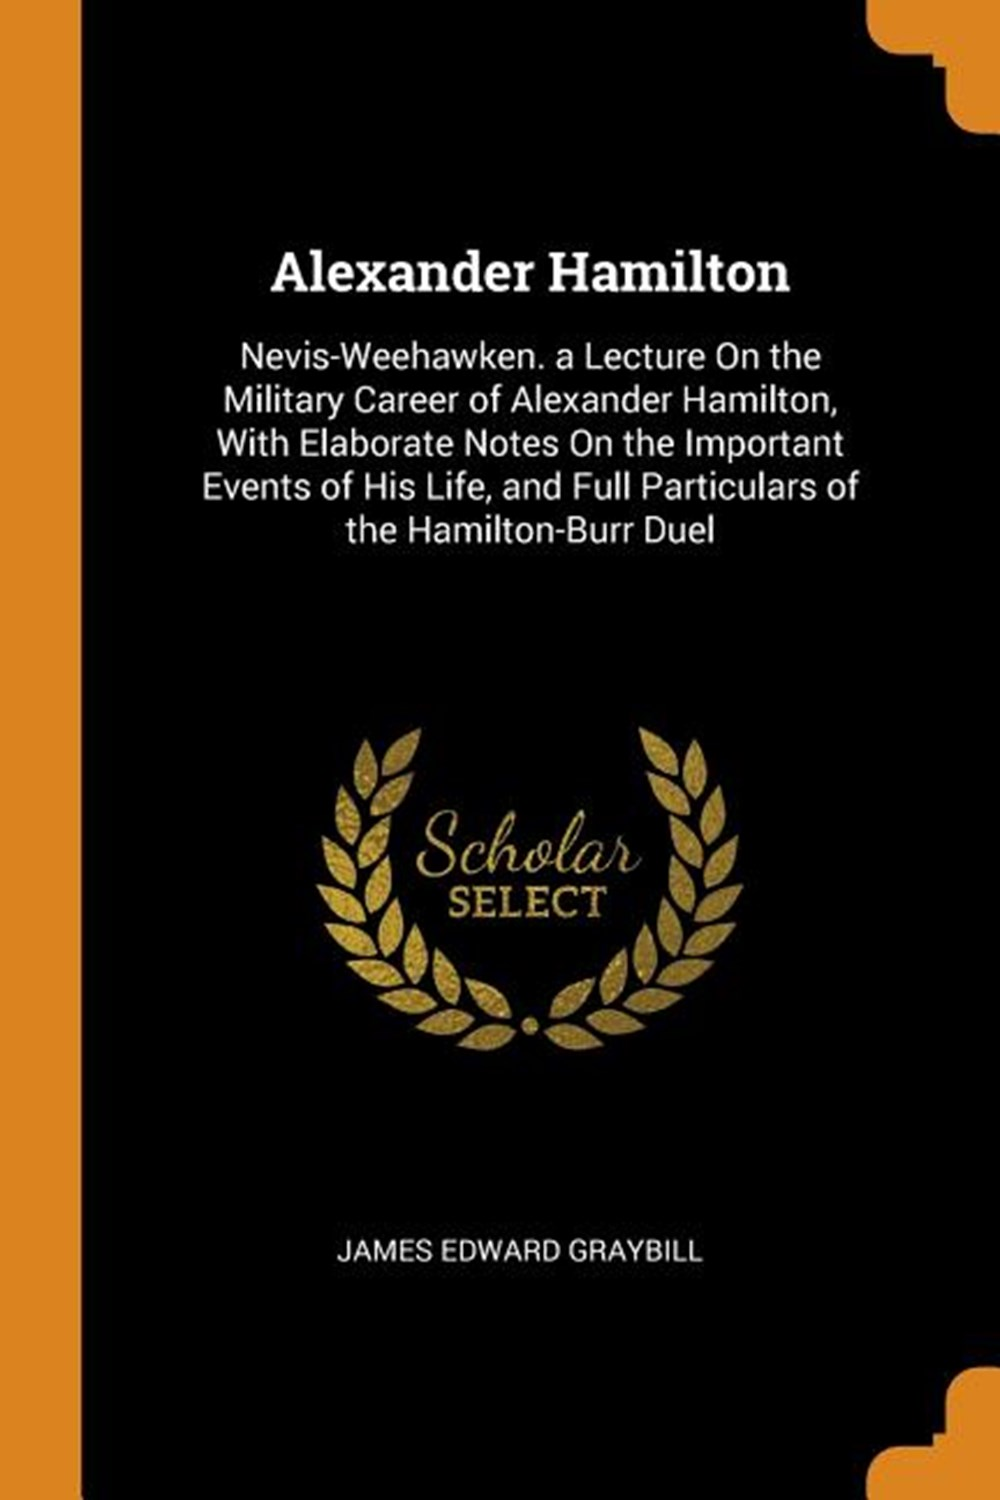 Alexander Hamilton Nevis-Weehawken. a Lecture on the Military Career of Alexander Hamilton, with Ela